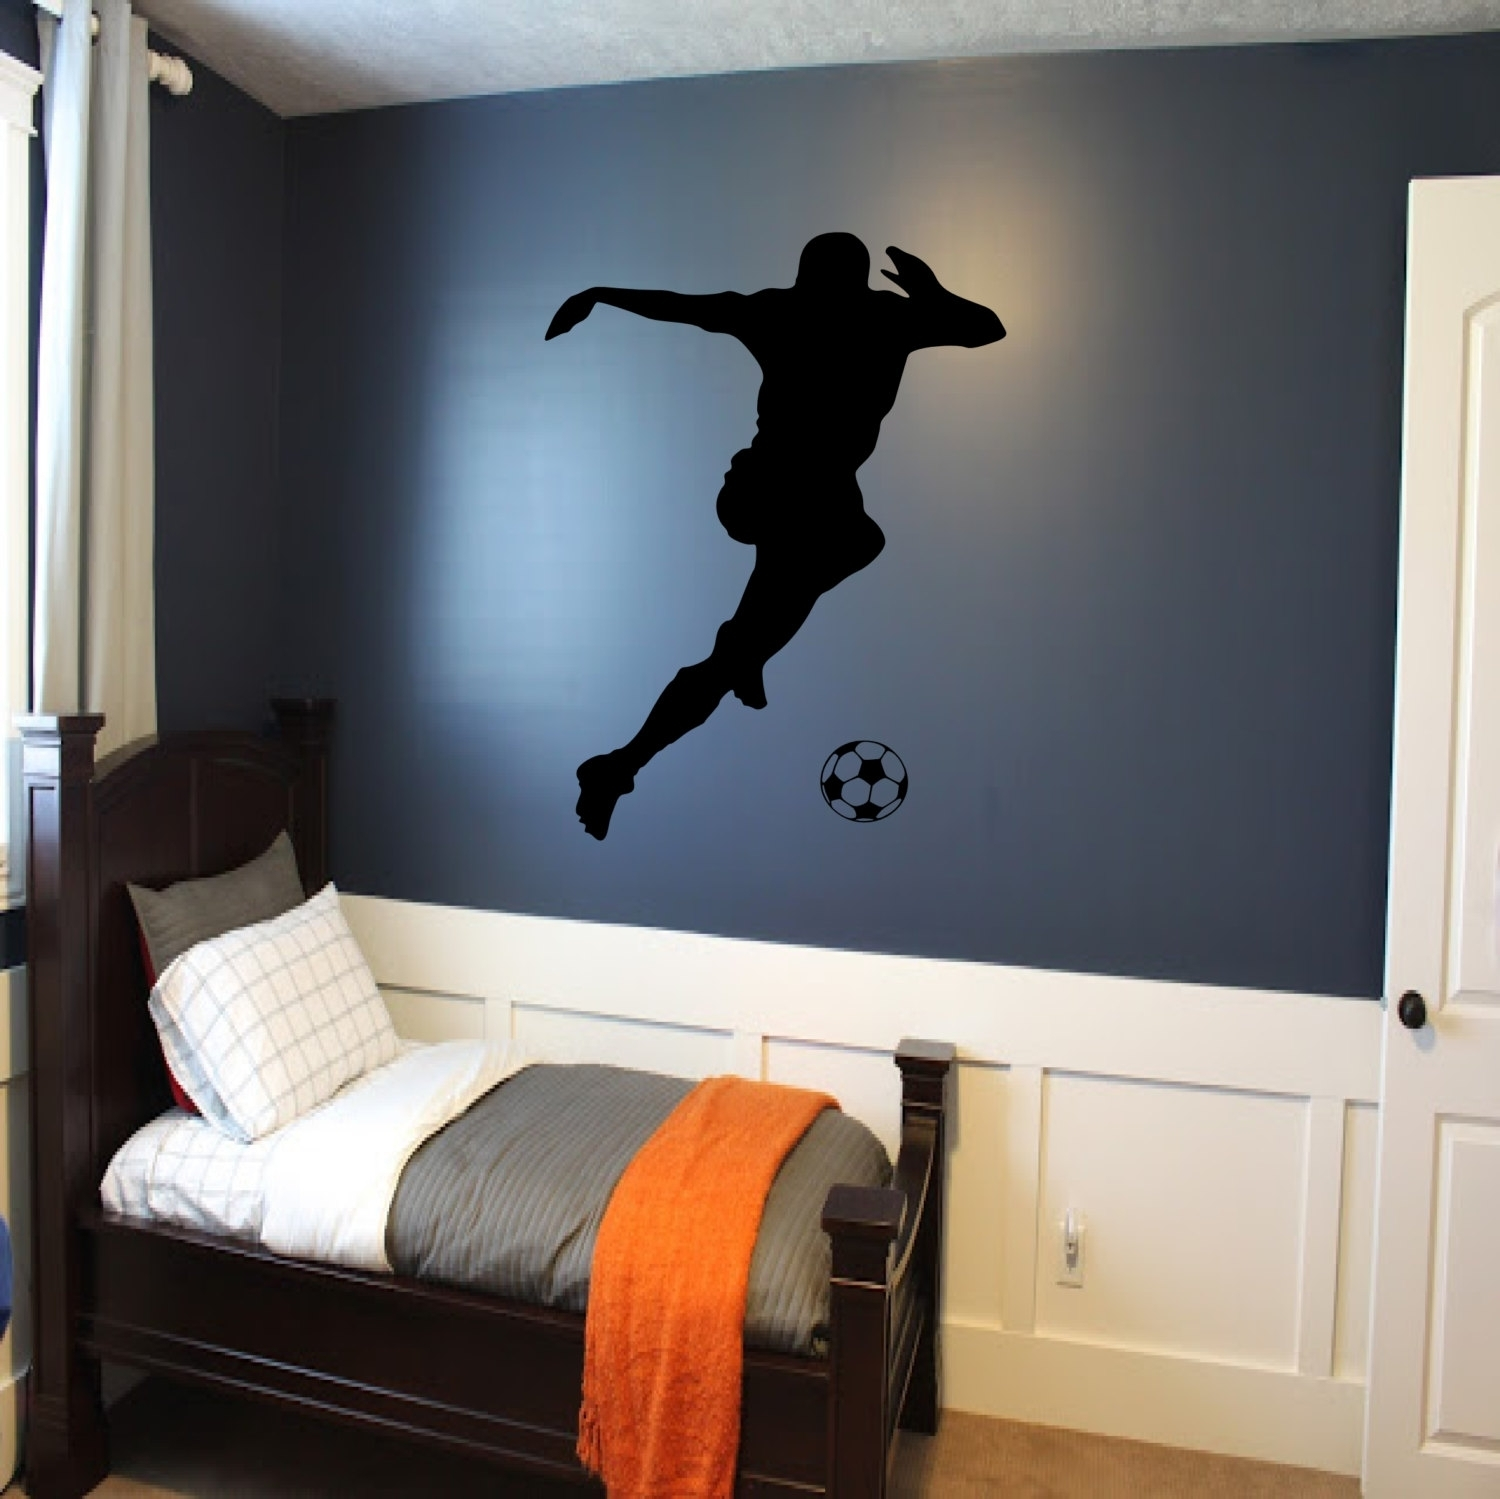 Inspirational Soccer Wall Art Paintings | Wall Decorations With Regard To Newest Soccer Wall Art (Gallery 19 of 20)